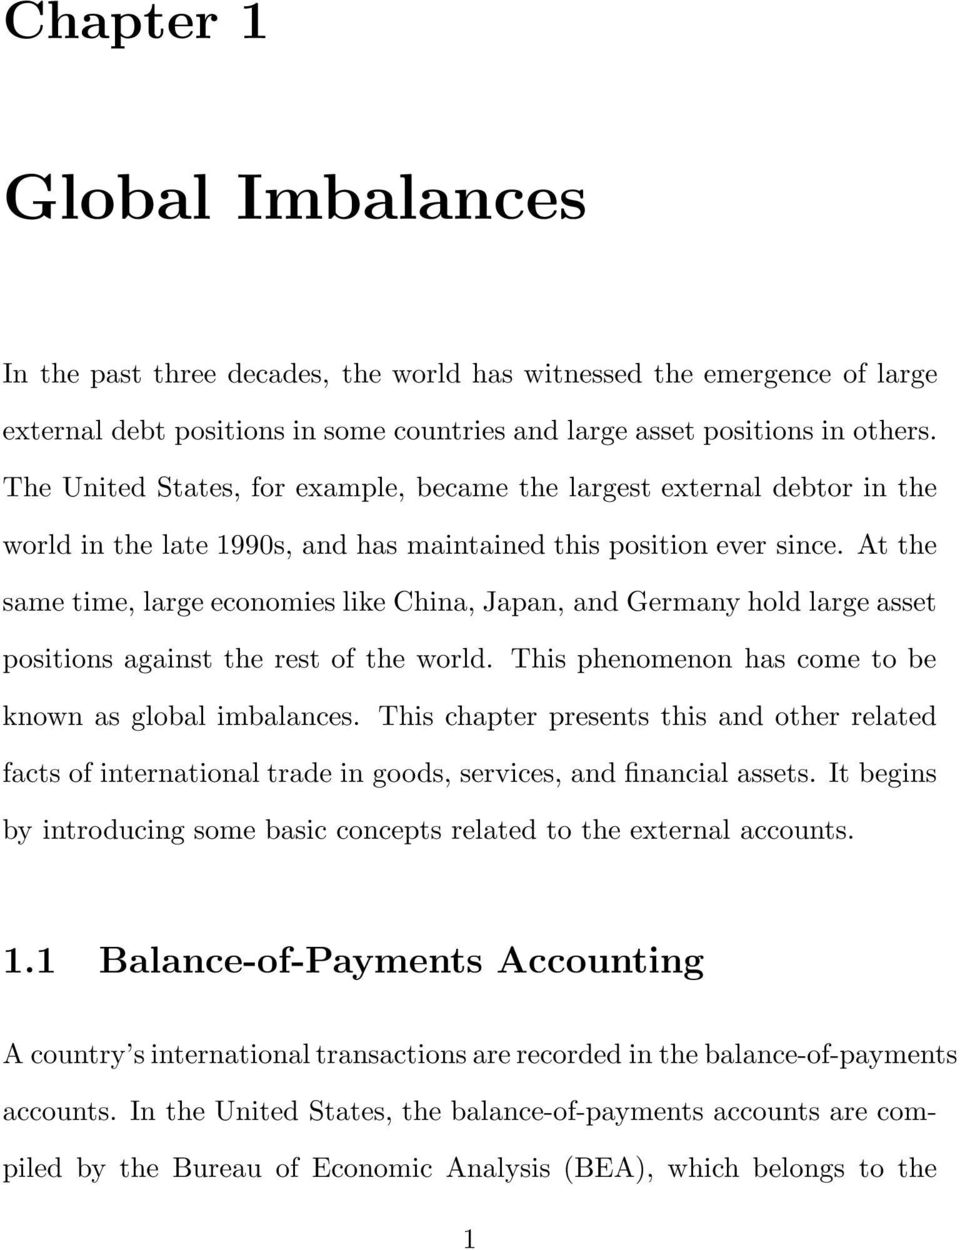 At the same time, large economies like China, Japan, and Germany hold large asset positions against the rest of the world. This phenomenon has come to be known as global imbalances.